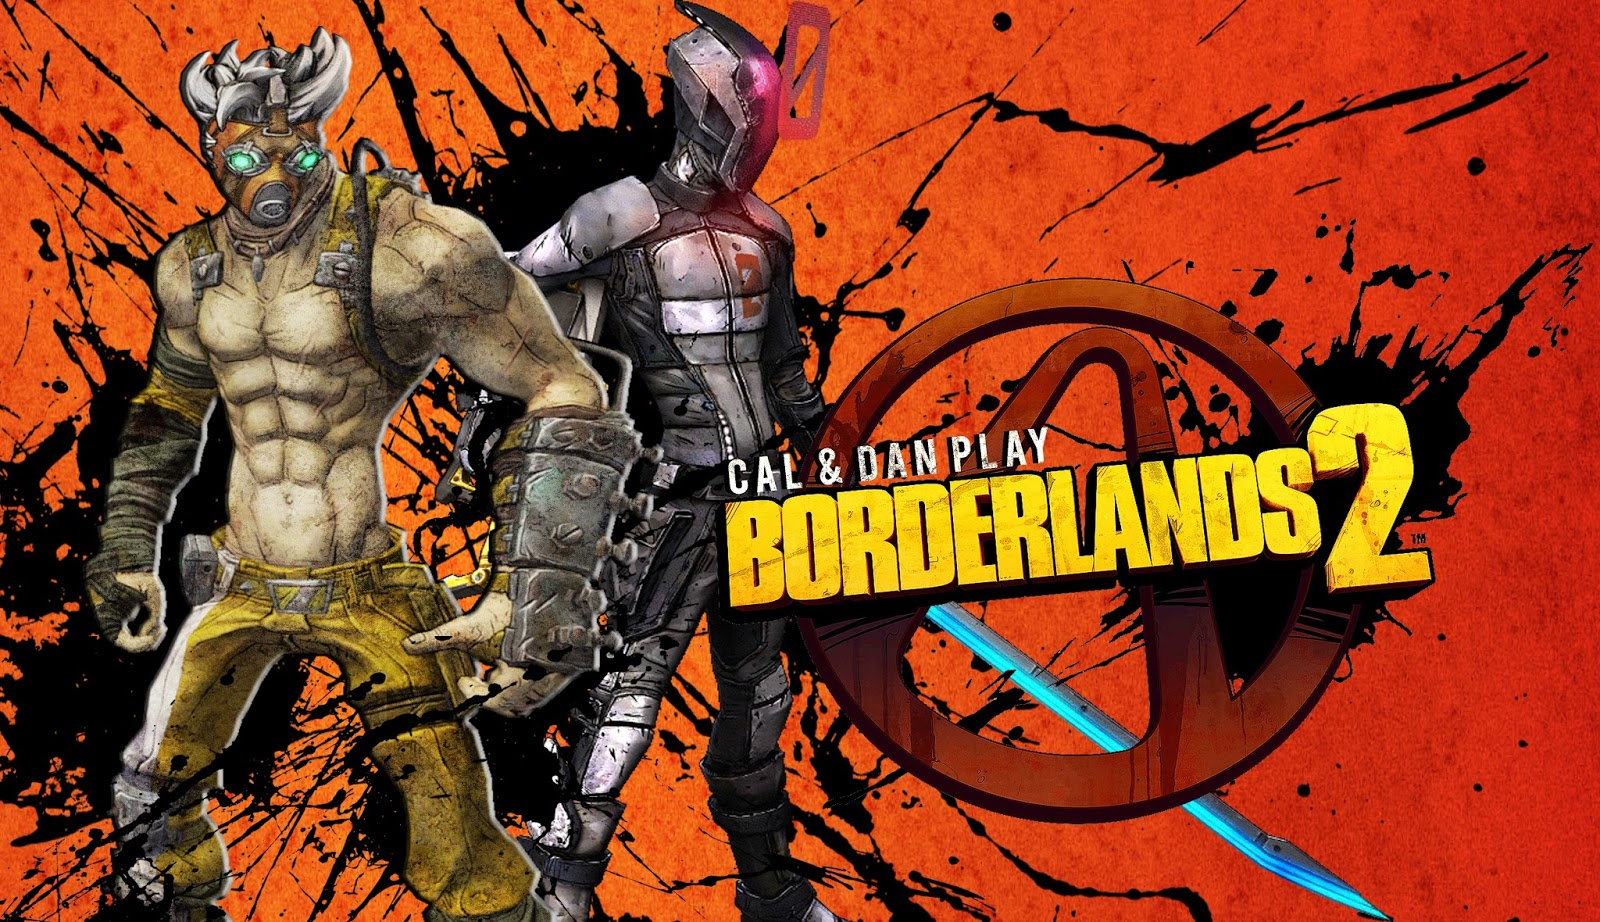 Cal and Dan play: Borderlands 2